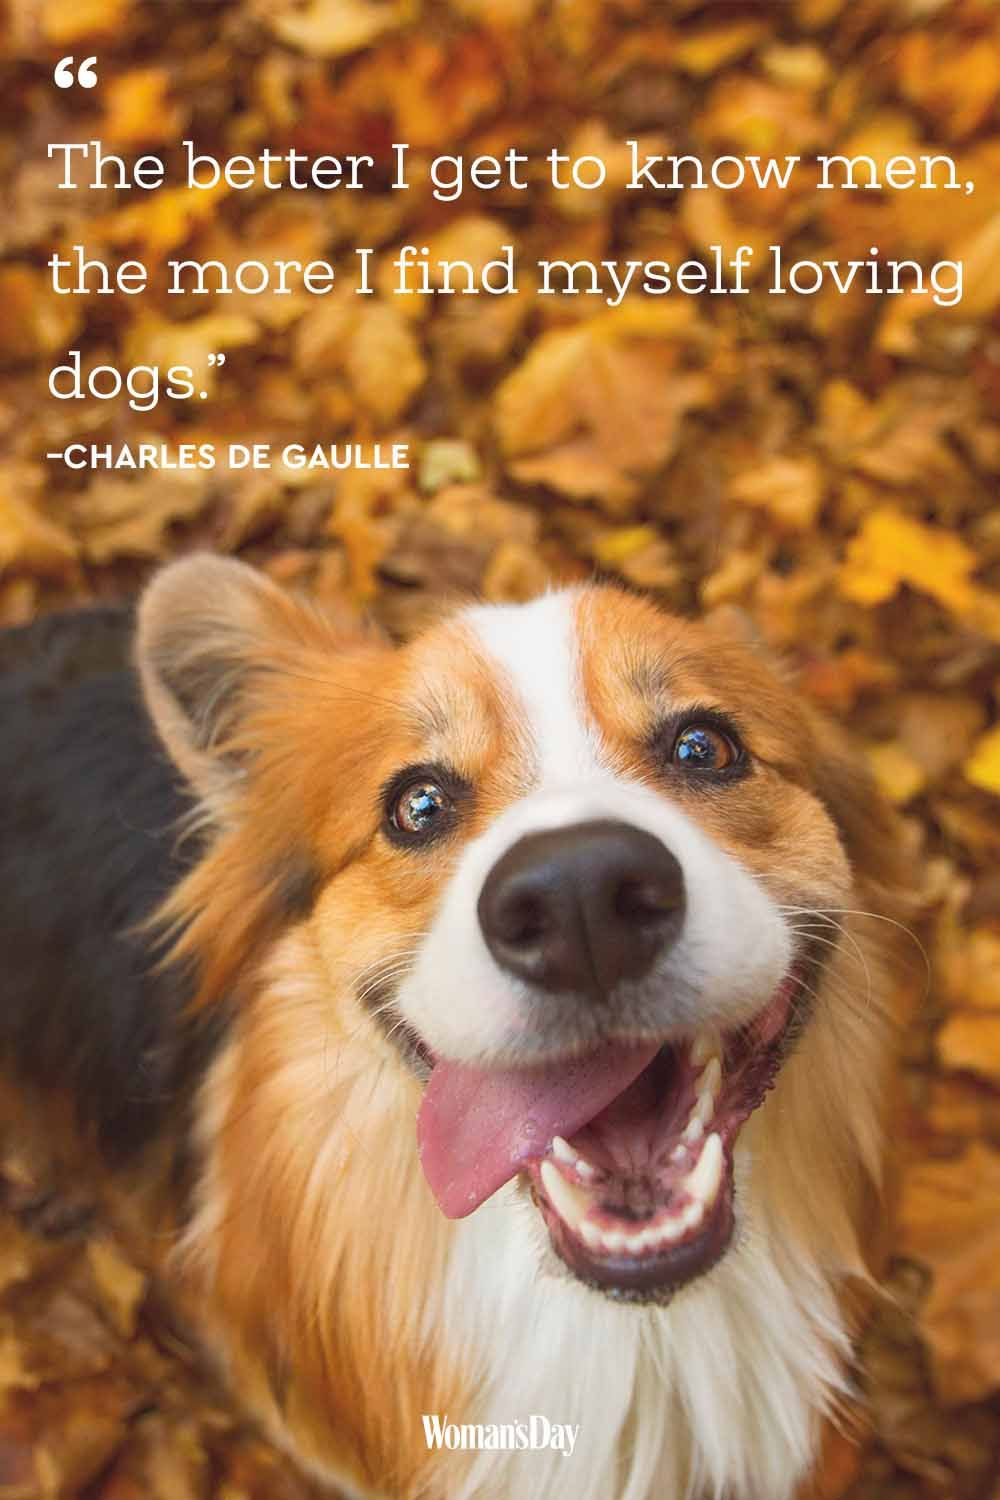 Dog Quotes - Charles de Gaulle